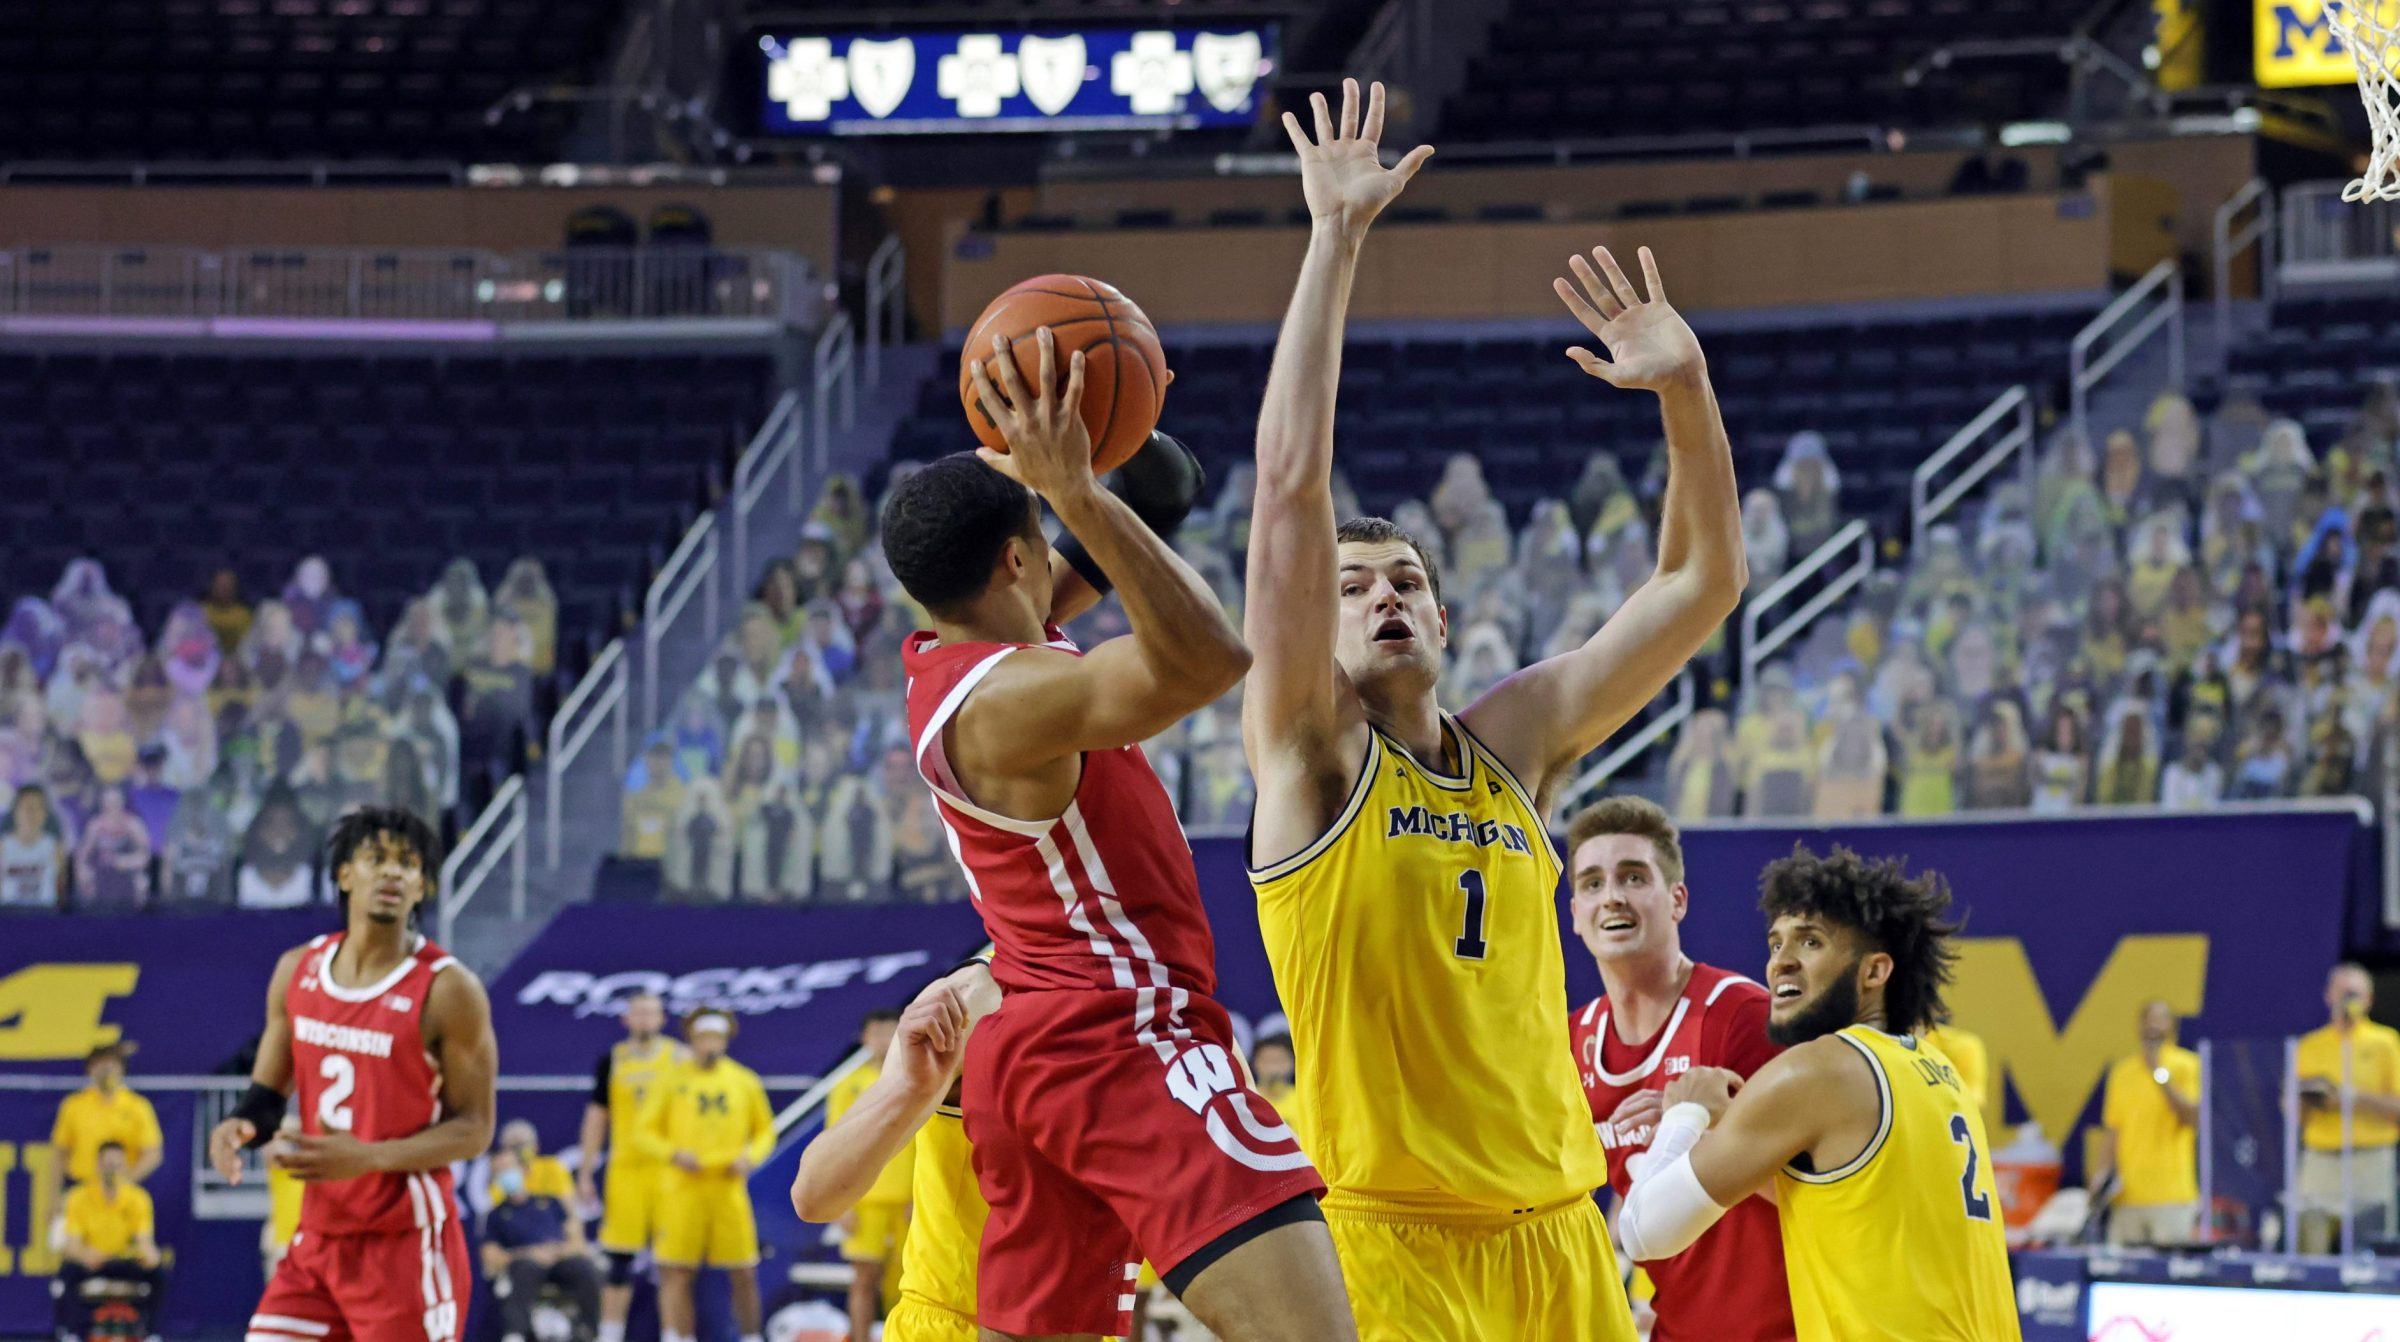 Hunter Dickinson #1 of the Michigan Wolverines defends